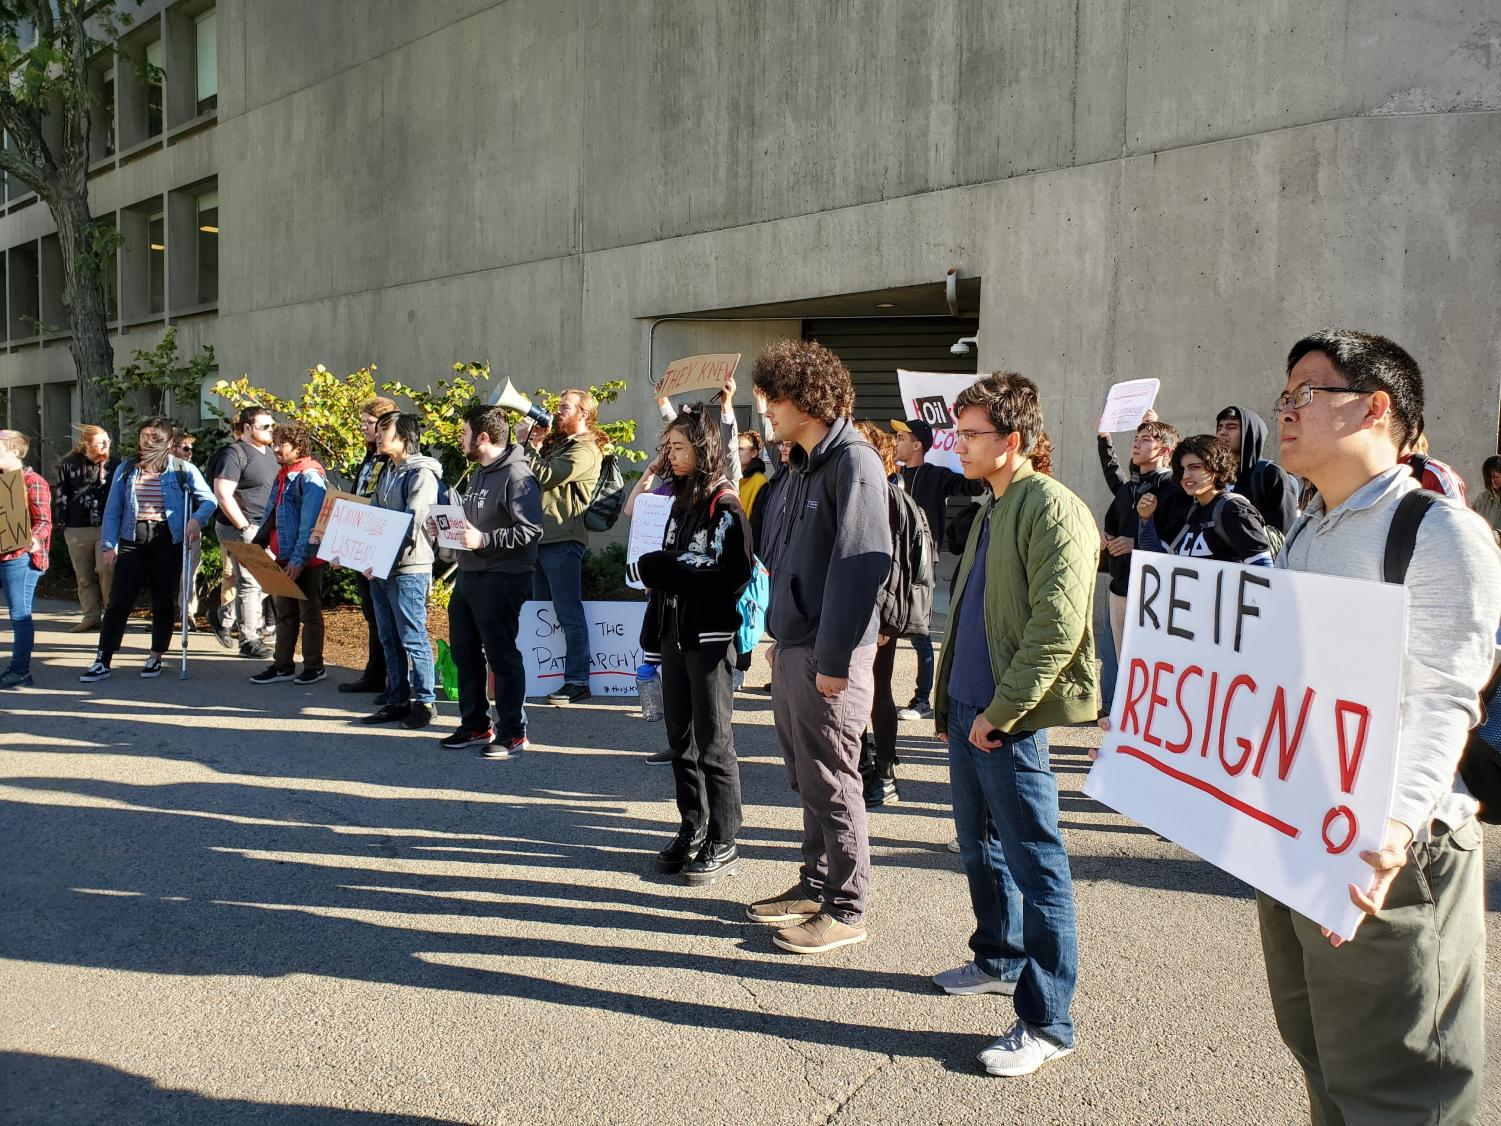 MIT students and faculty protested the administration's financial ties at the annual MIT Corporation meeting last Friday.